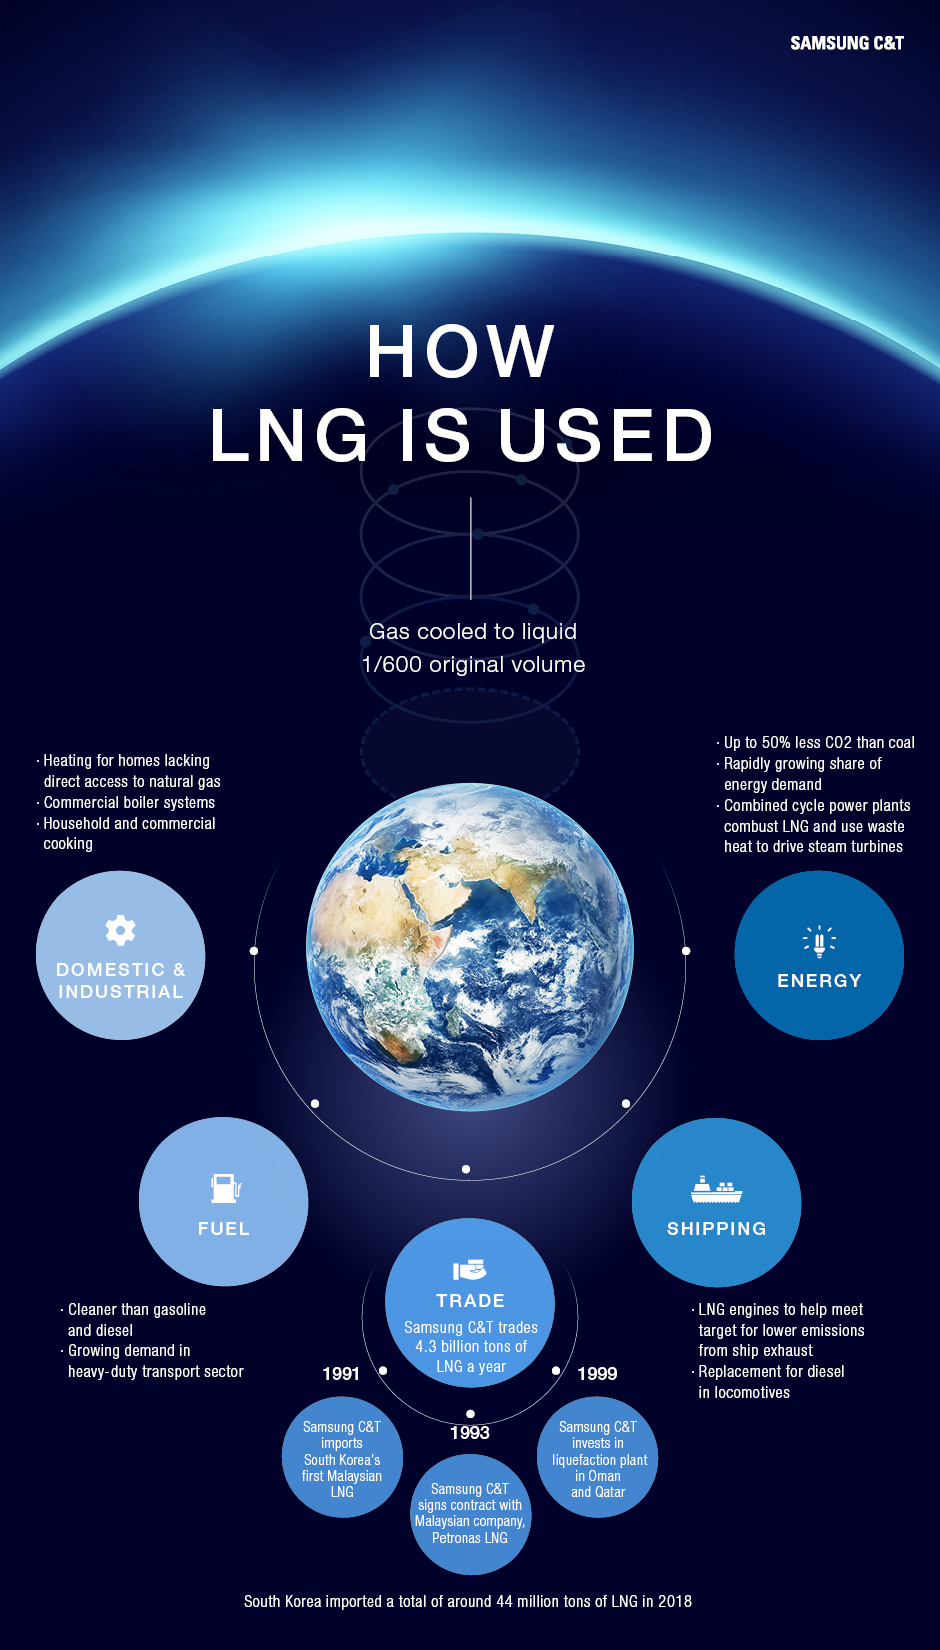 How LNG is used infographic